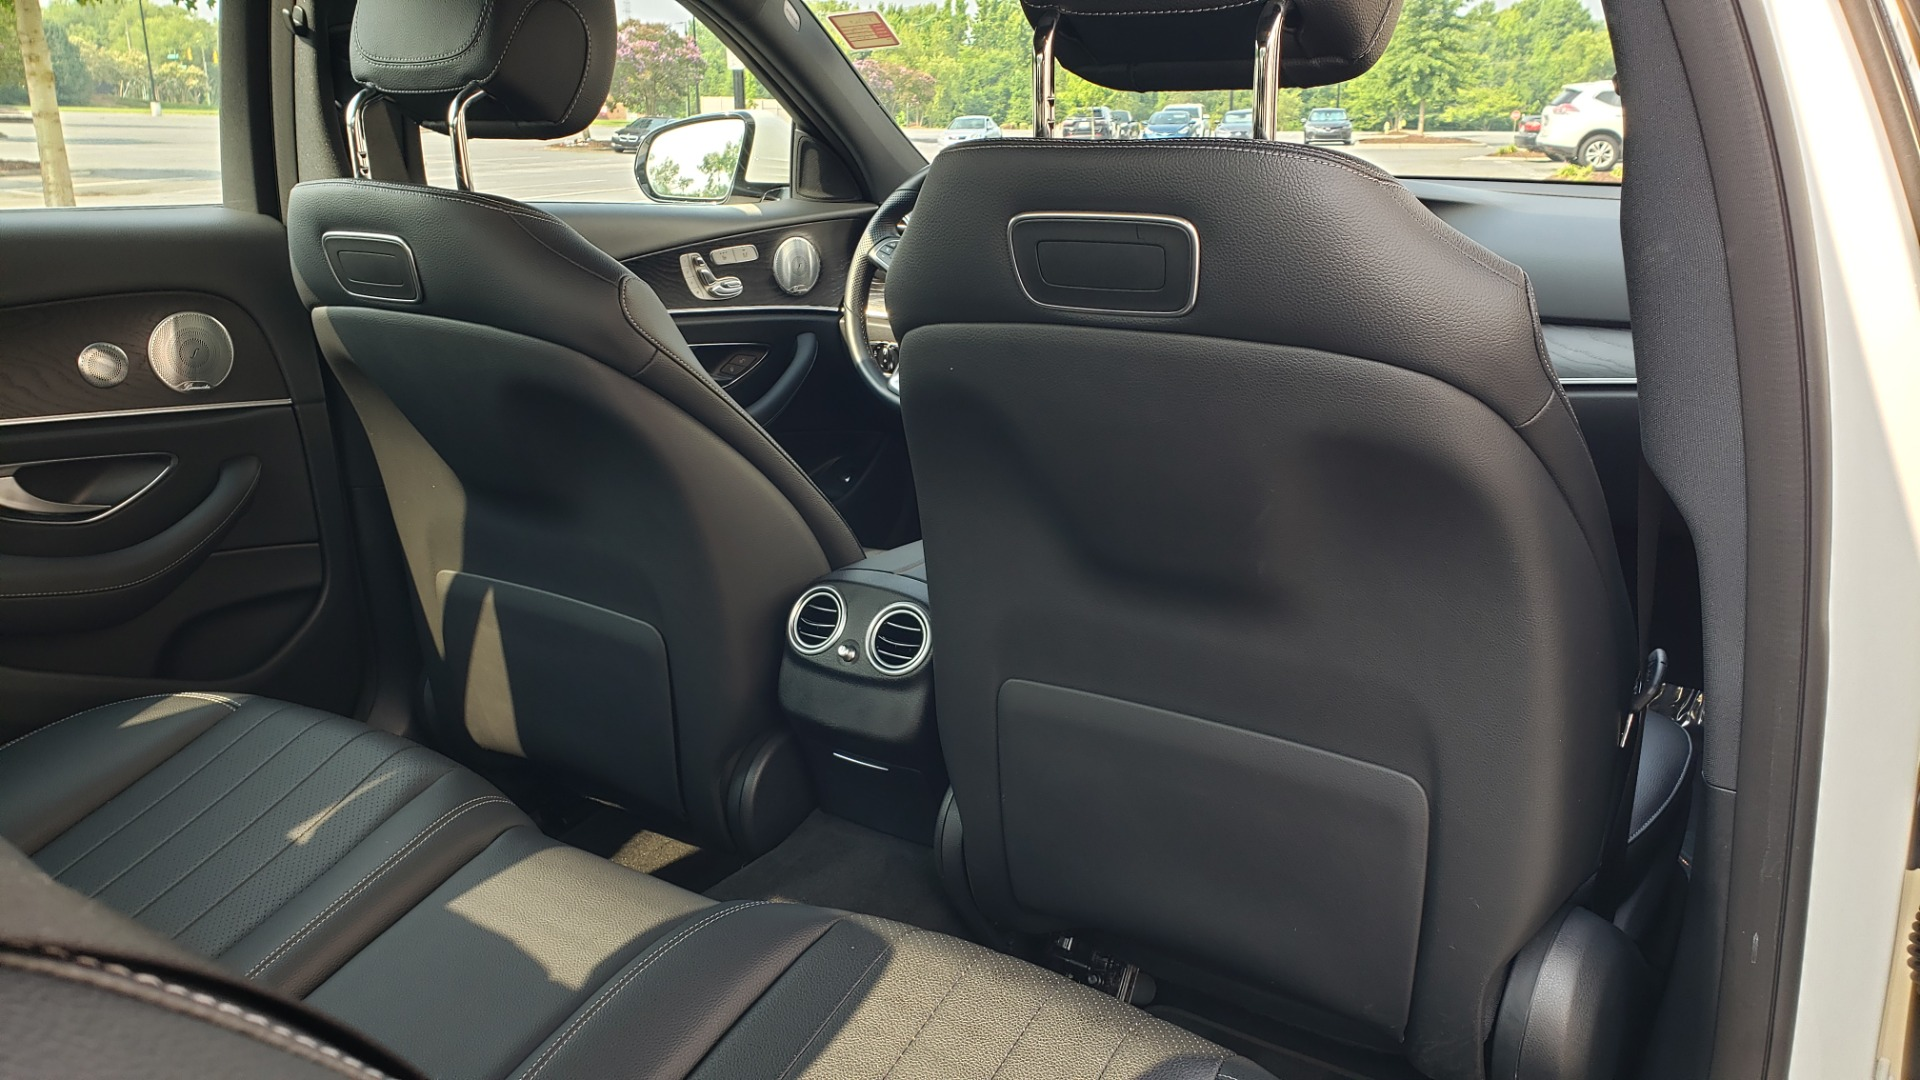 Used 2018 Mercedes-Benz E-CLASS E 300 4MATIC / PREMIUM / NAV / PANO-ROOF / BURMESTER / REARVIEW for sale $41,995 at Formula Imports in Charlotte NC 28227 68